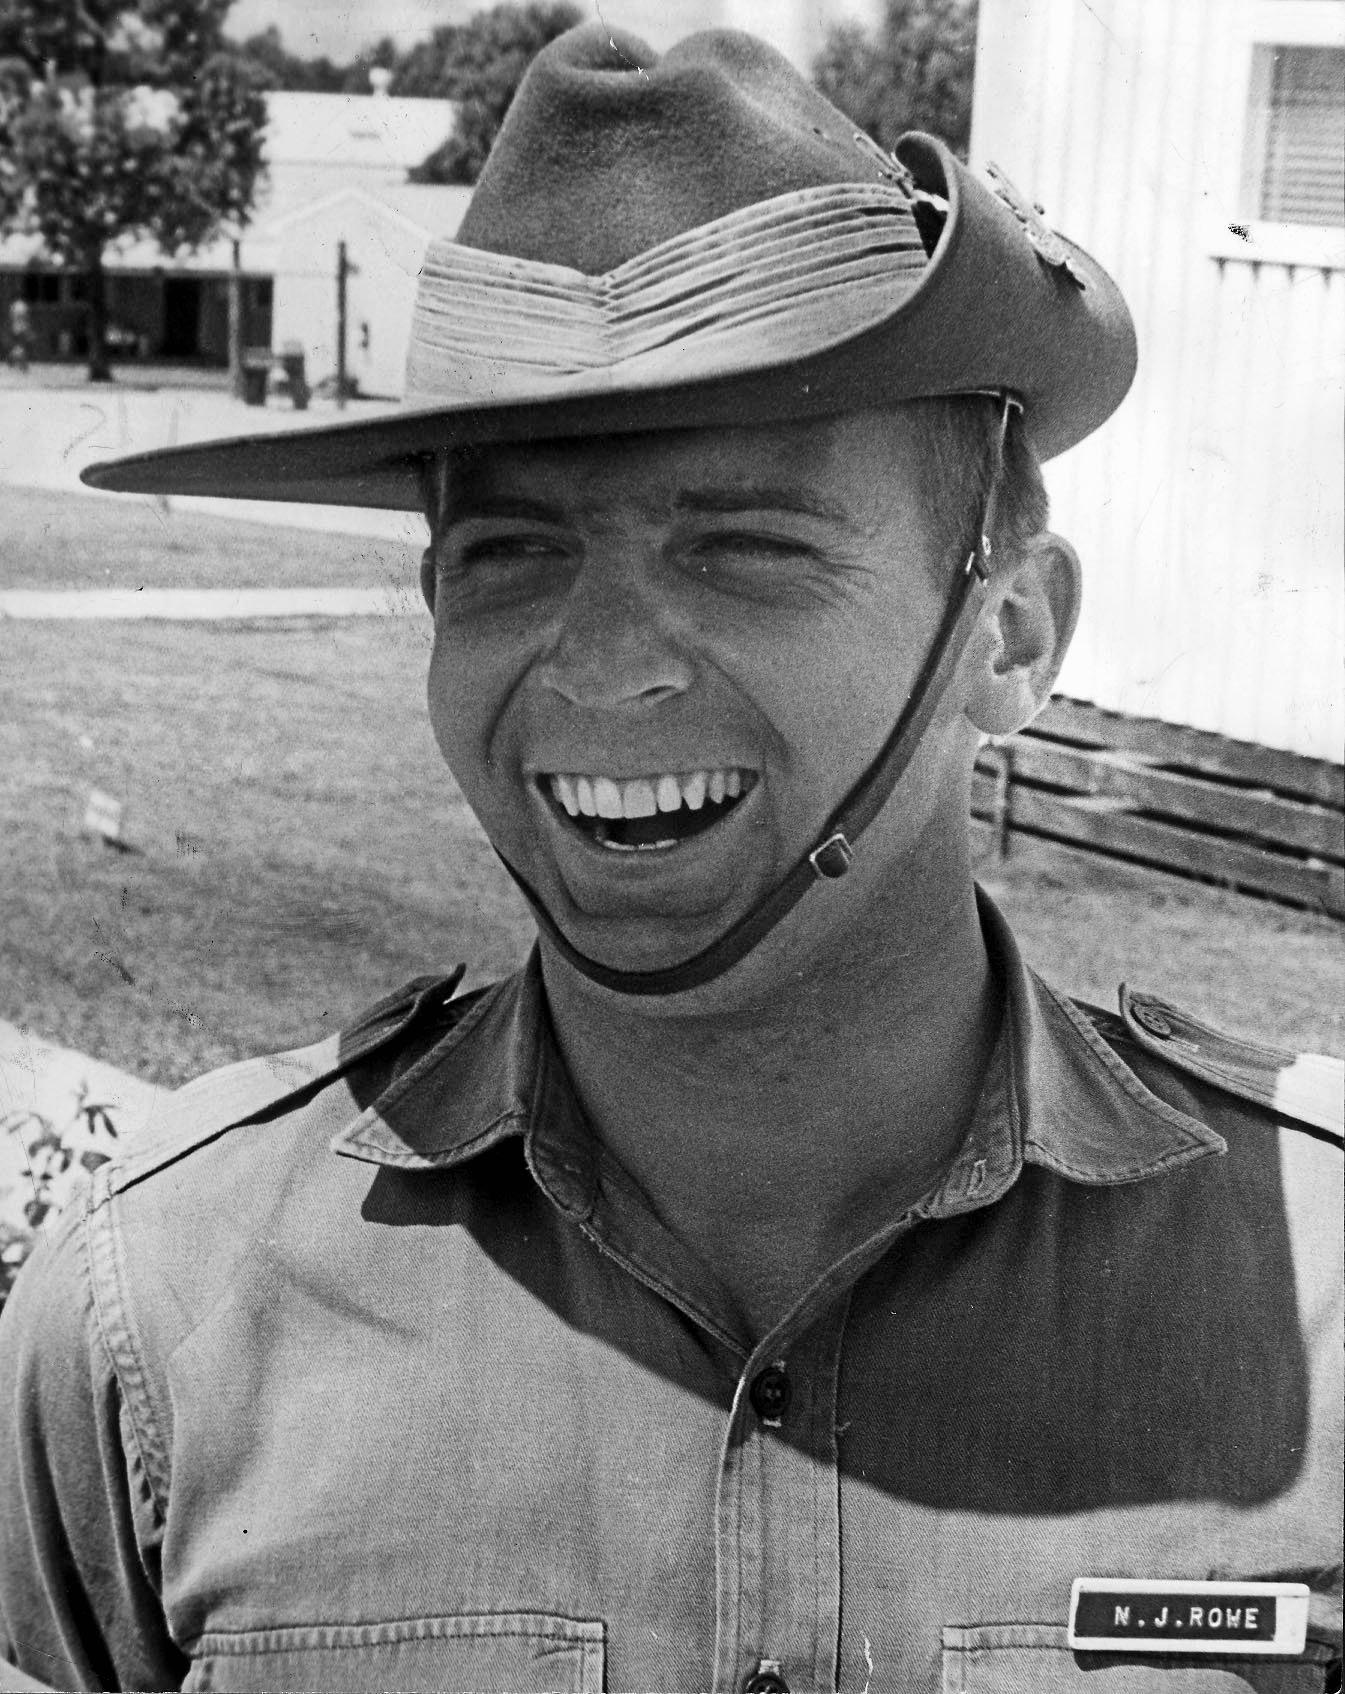 Normie Rowe the soldier during his Vietnam service.